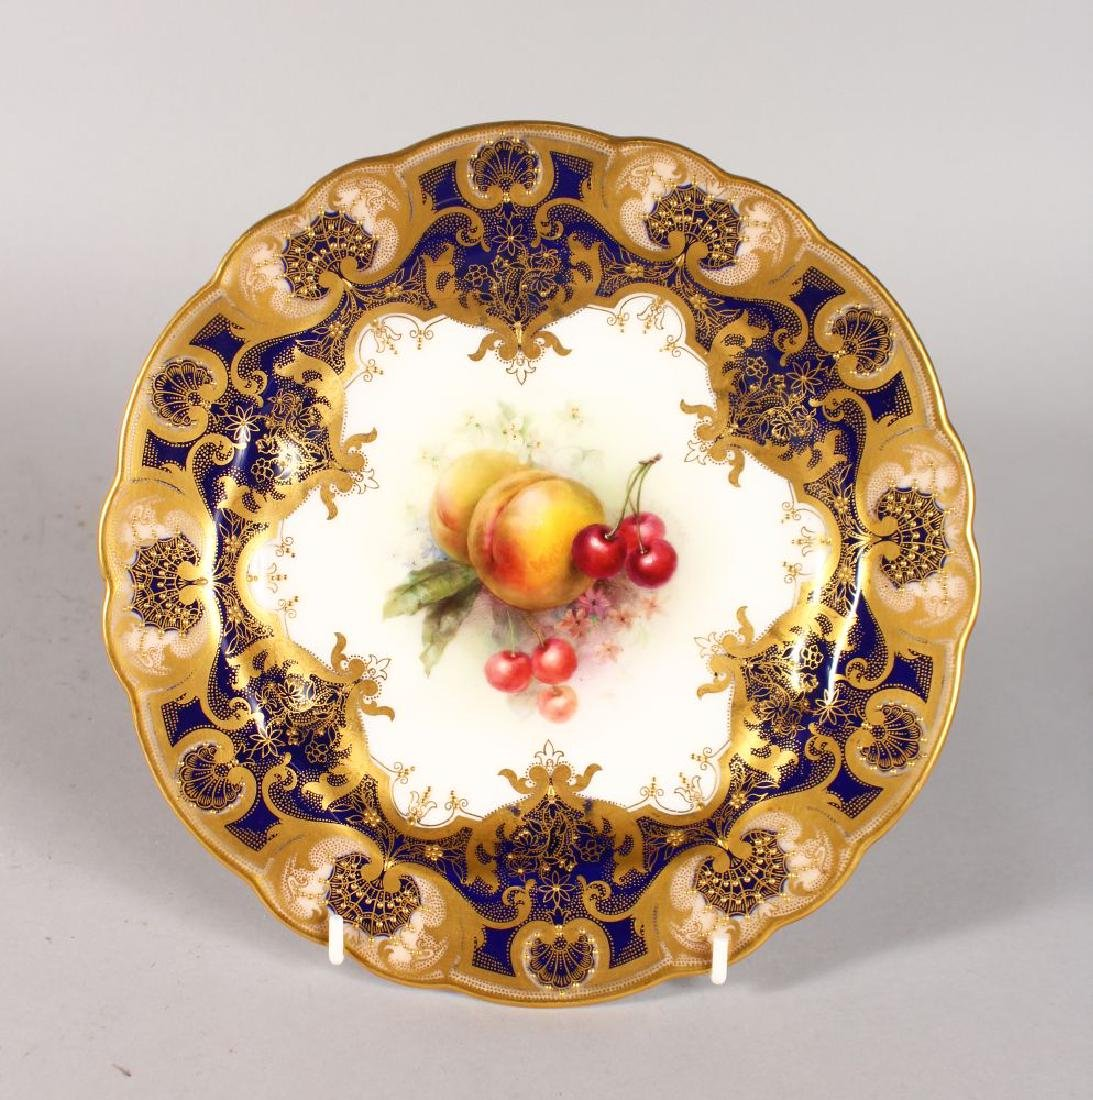 A ROYAL WORCESTER FINE PLATE with cobalt blue border